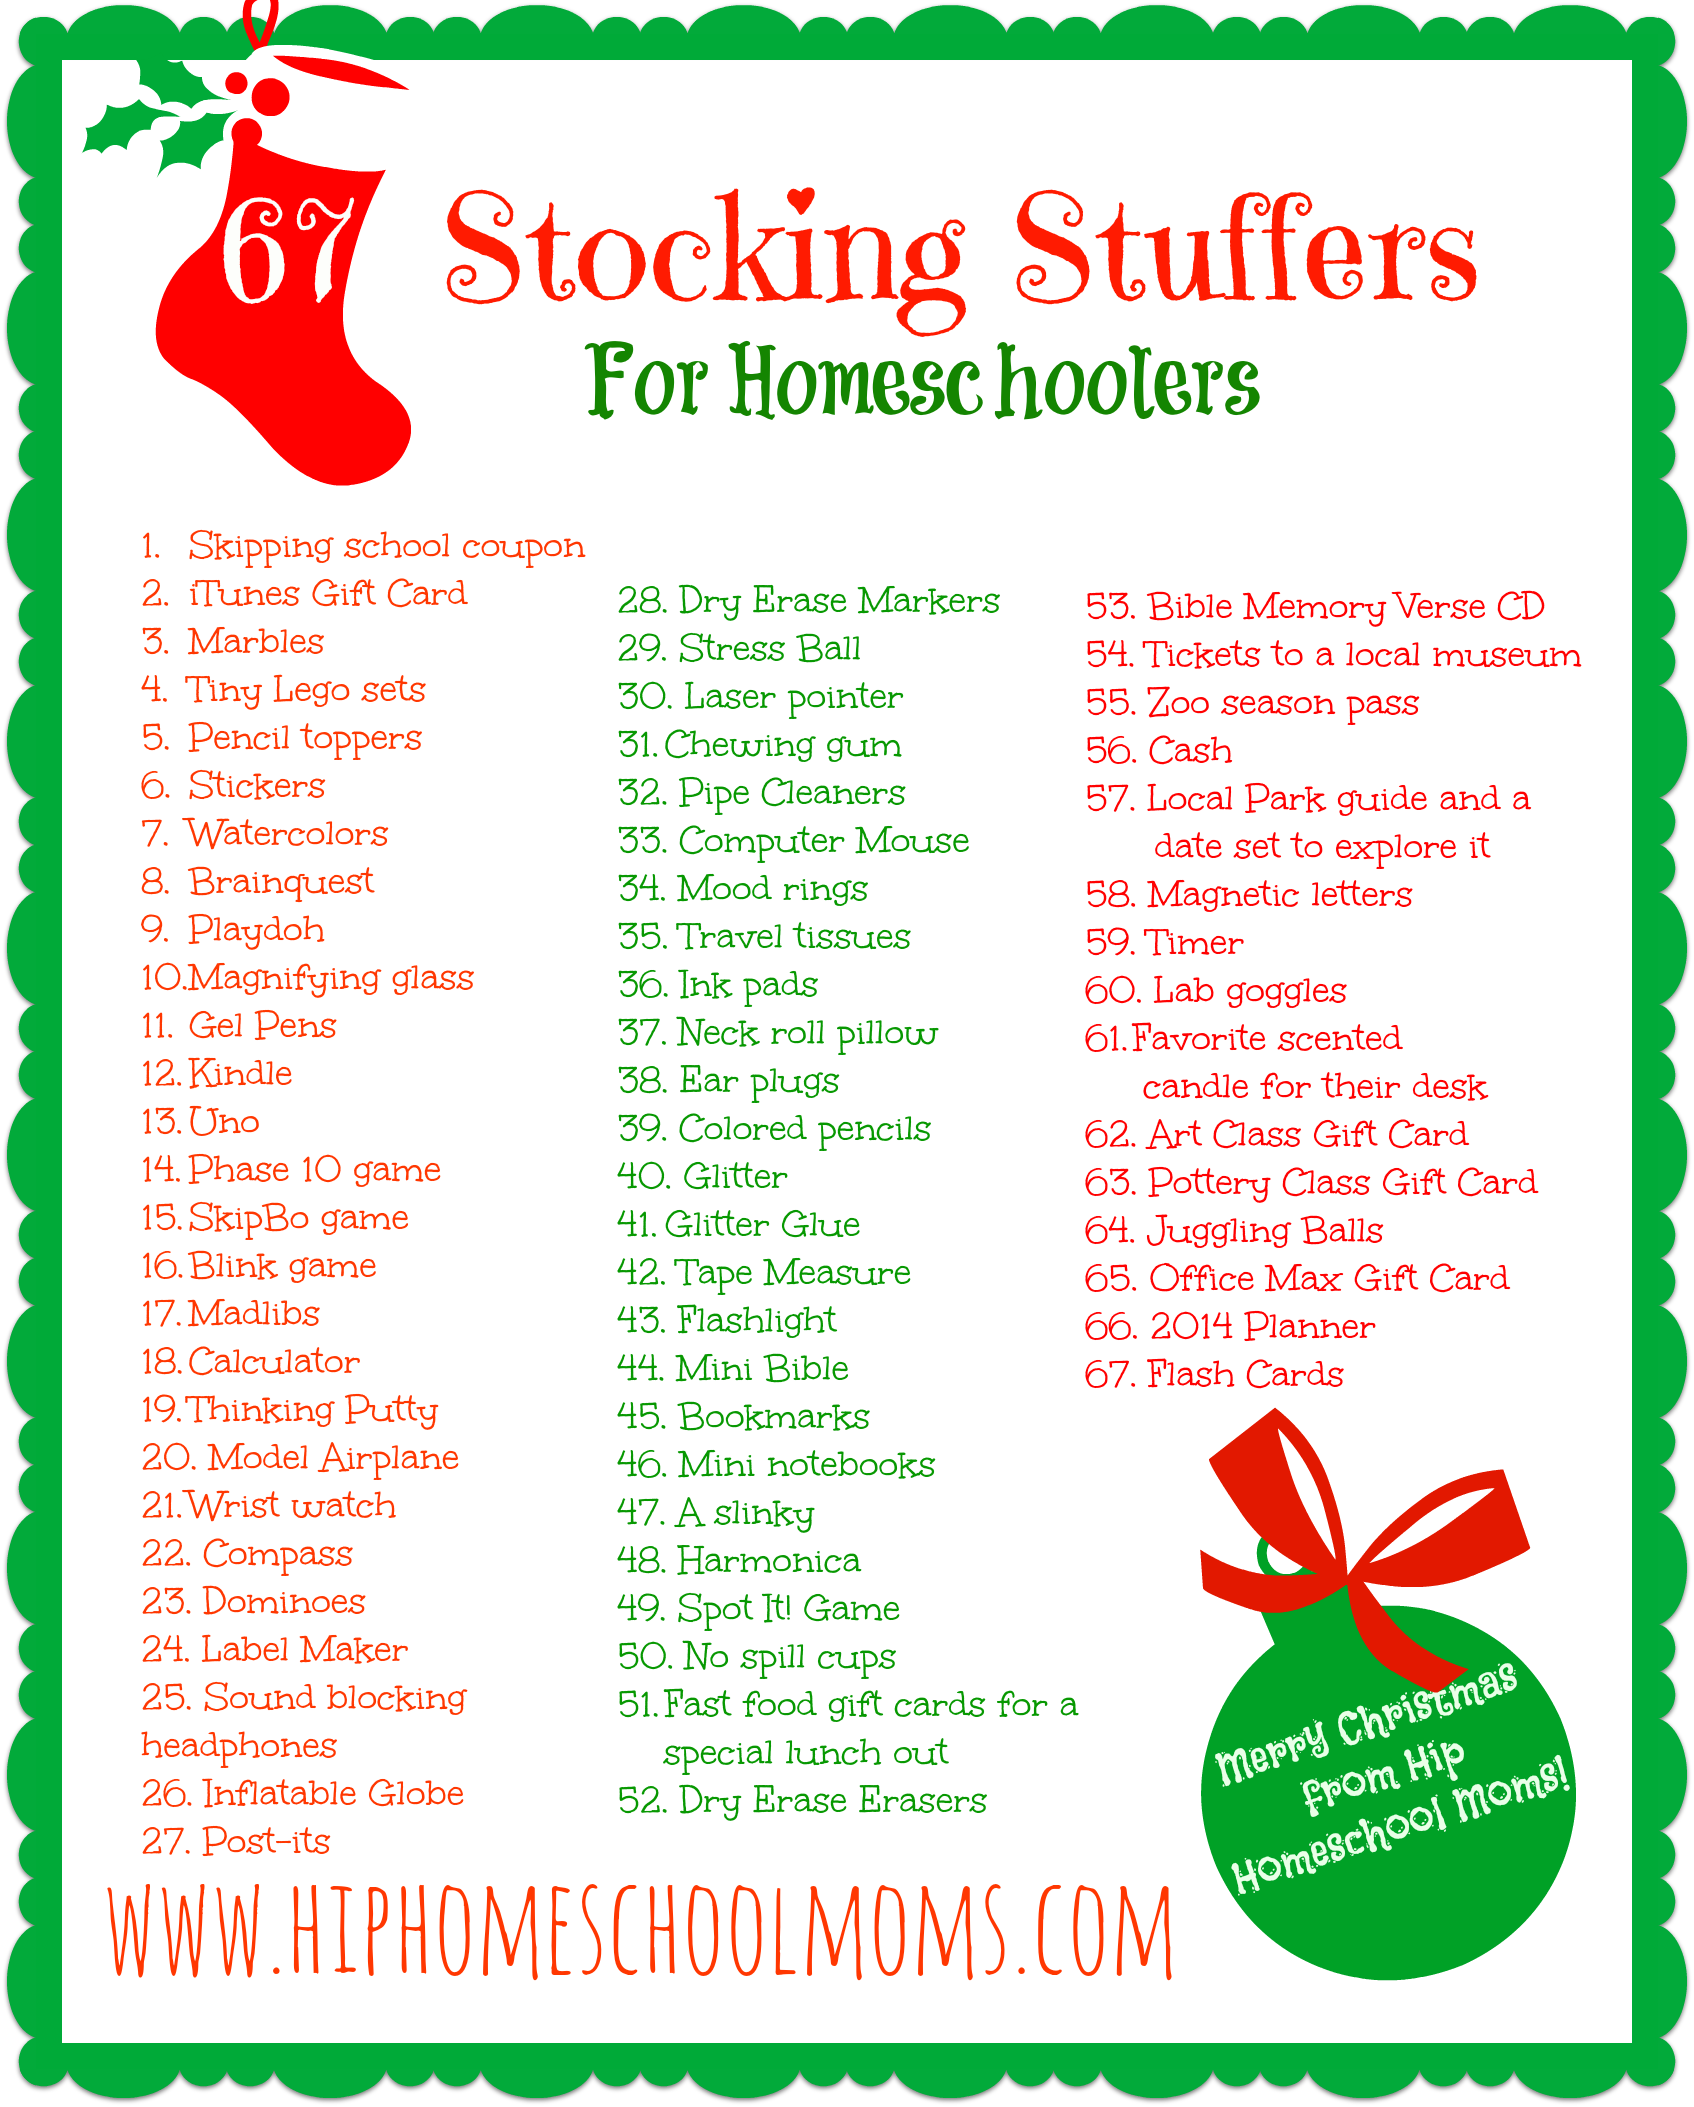 Printable Homeschool Stocking Stuffer Ideas - Hip Homeschool Moms